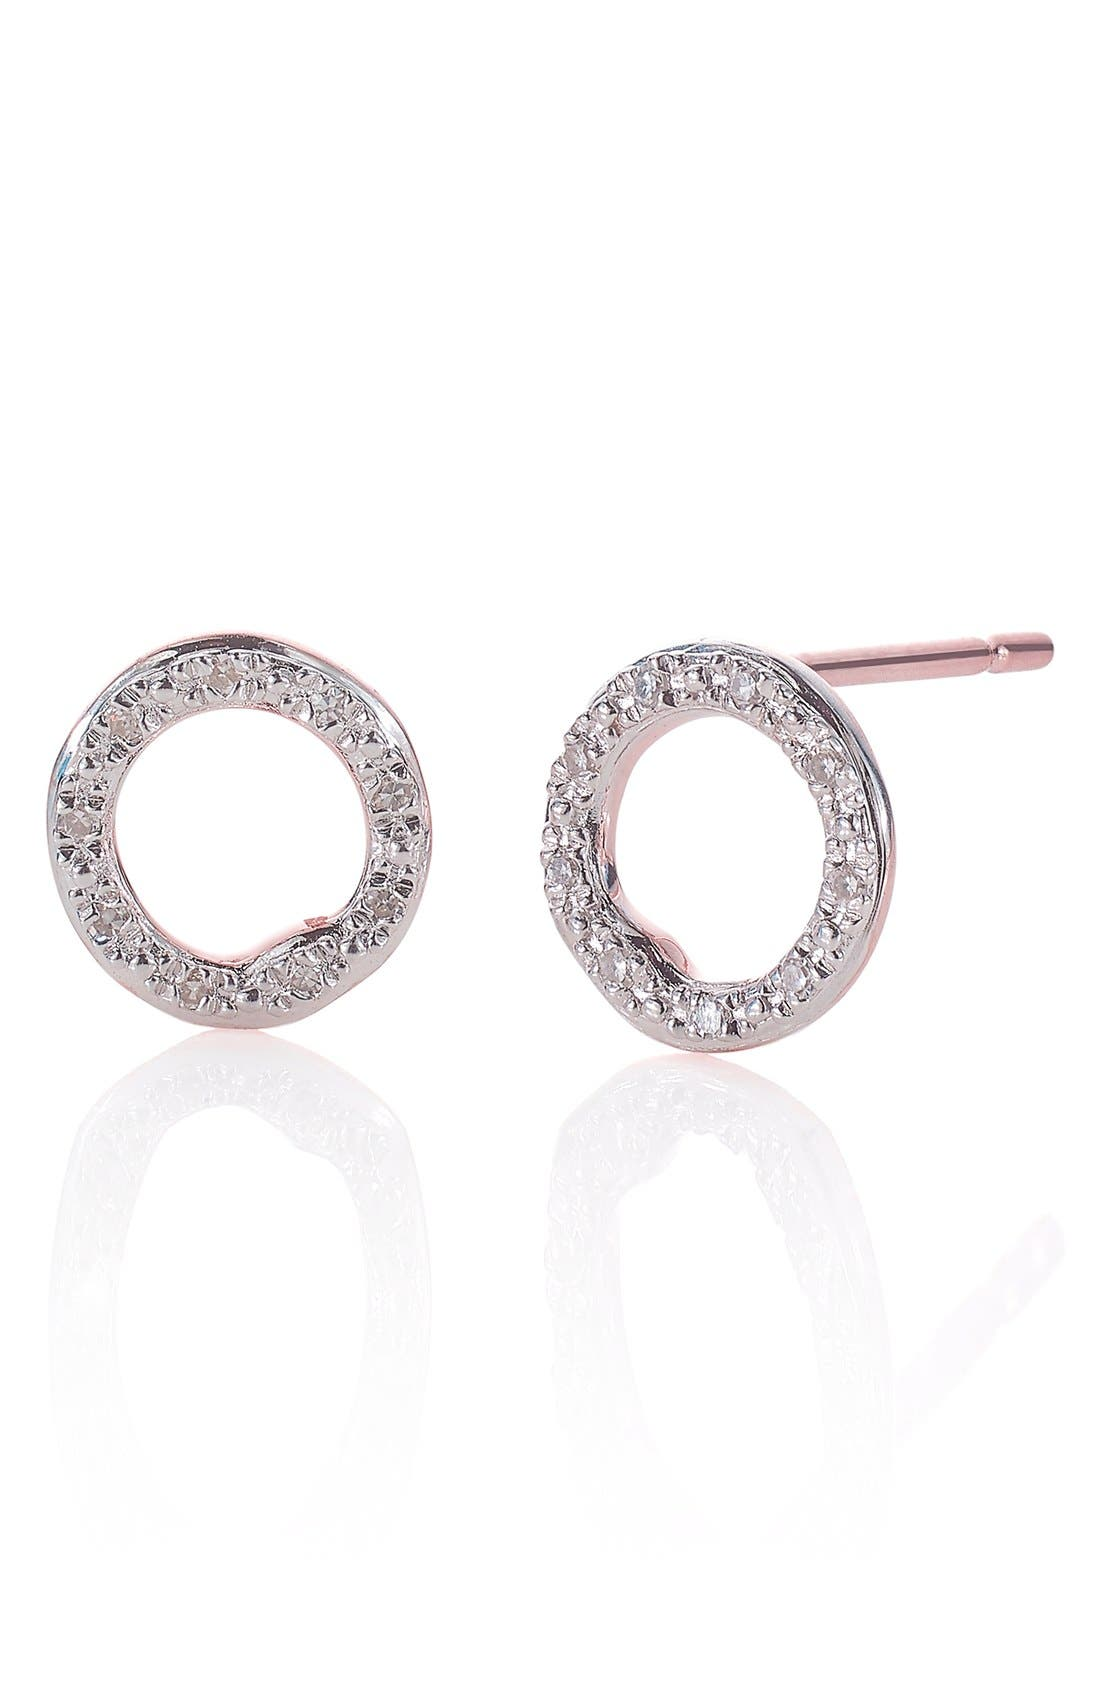 Main Image - Monica Vinader 'Riva' Circle Stud Diamond Earrings